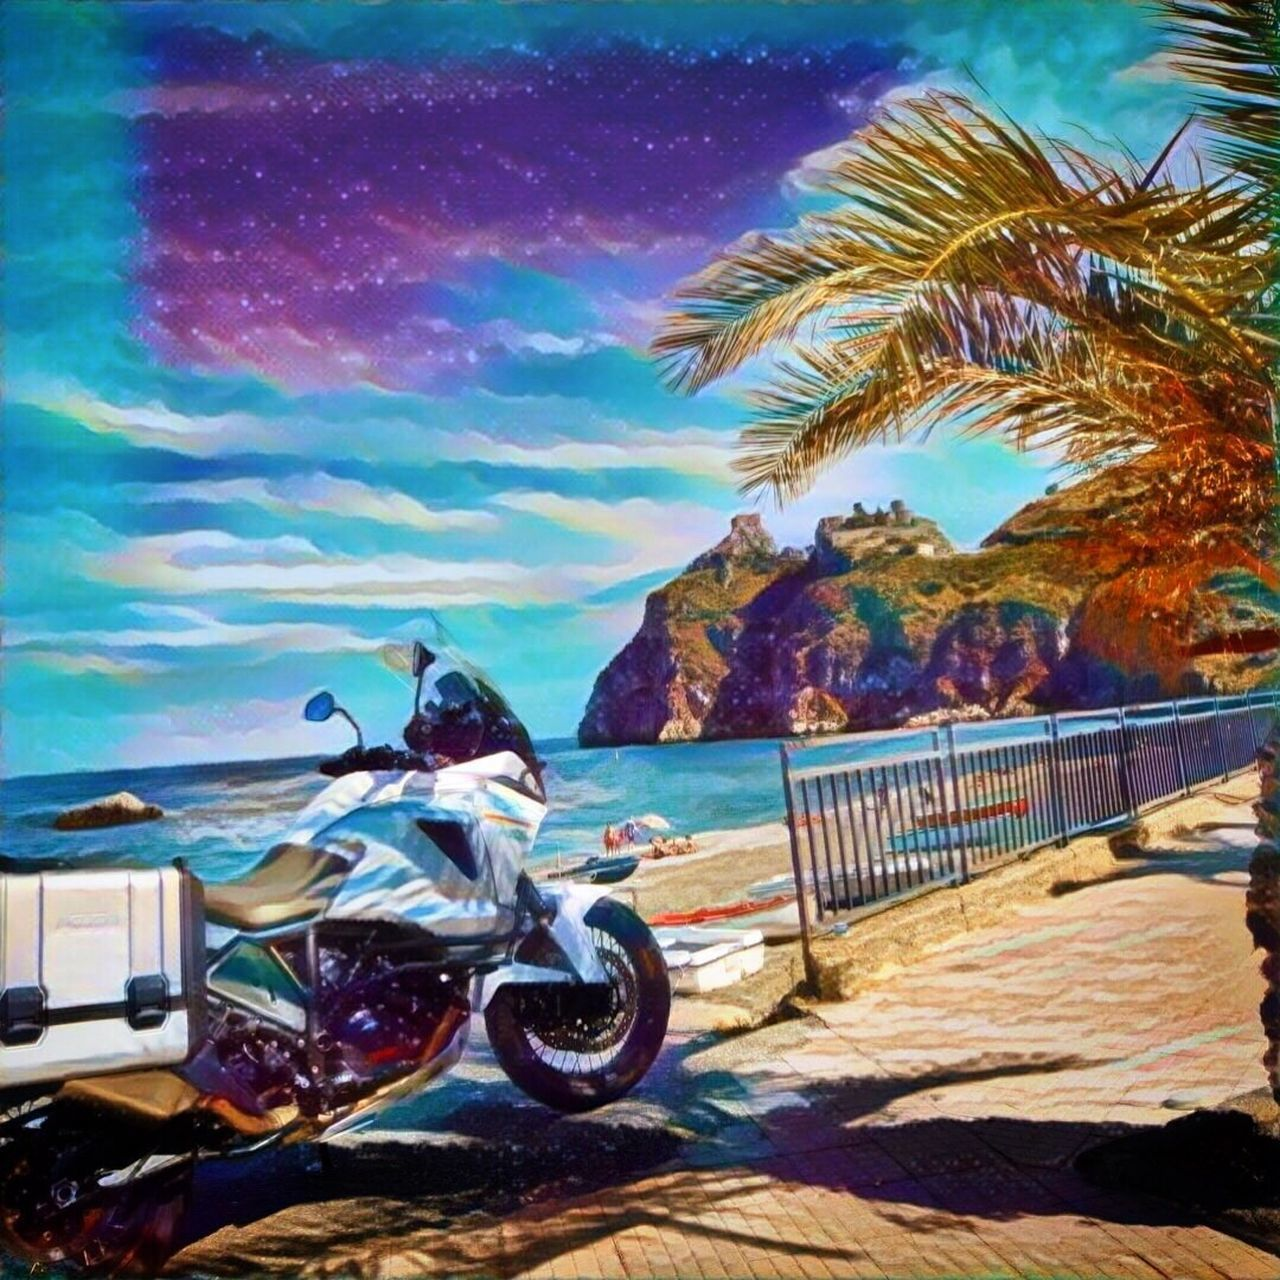 sea, transportation, beach, sky, motorcycle, tree, day, outdoors, palm tree, nature, no people